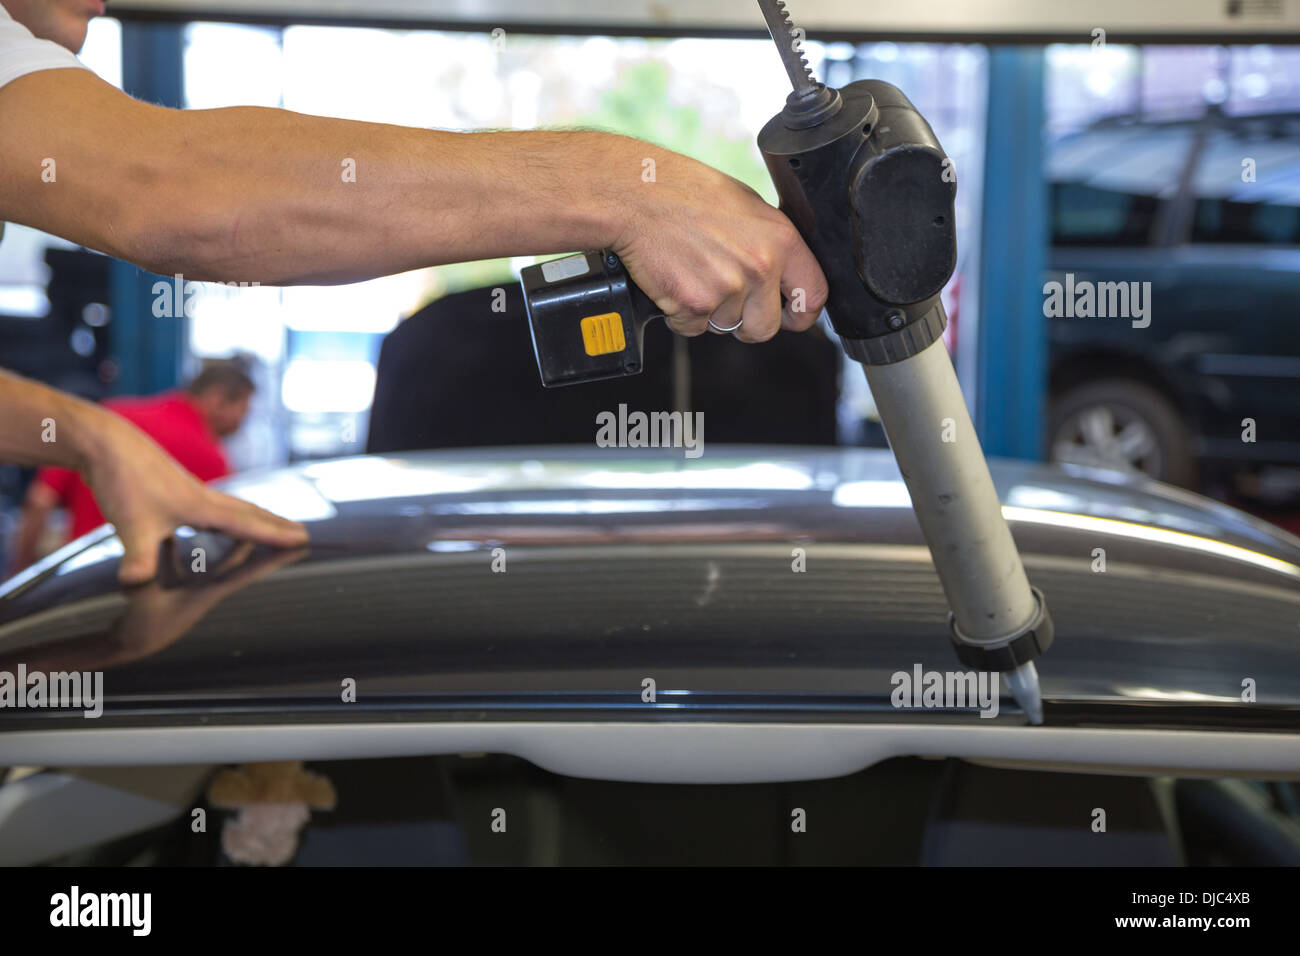 Adhesive Windscreen Stock Photos & Adhesive Windscreen Stock Images ...